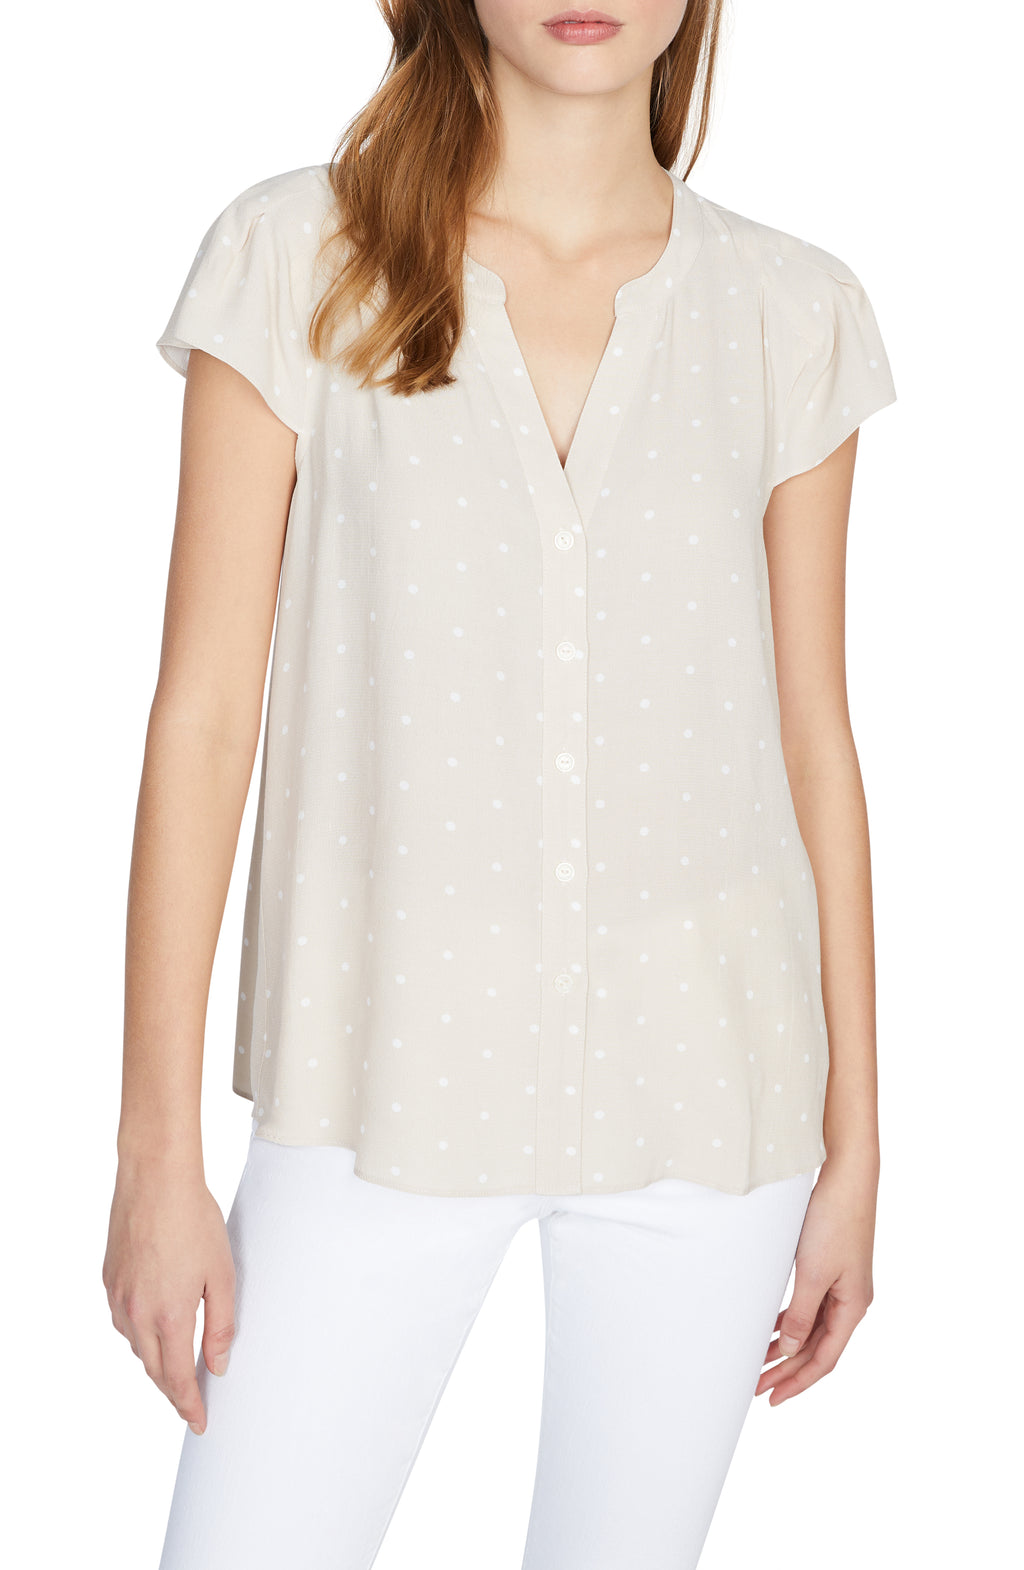 Tiffany Shell Blouse